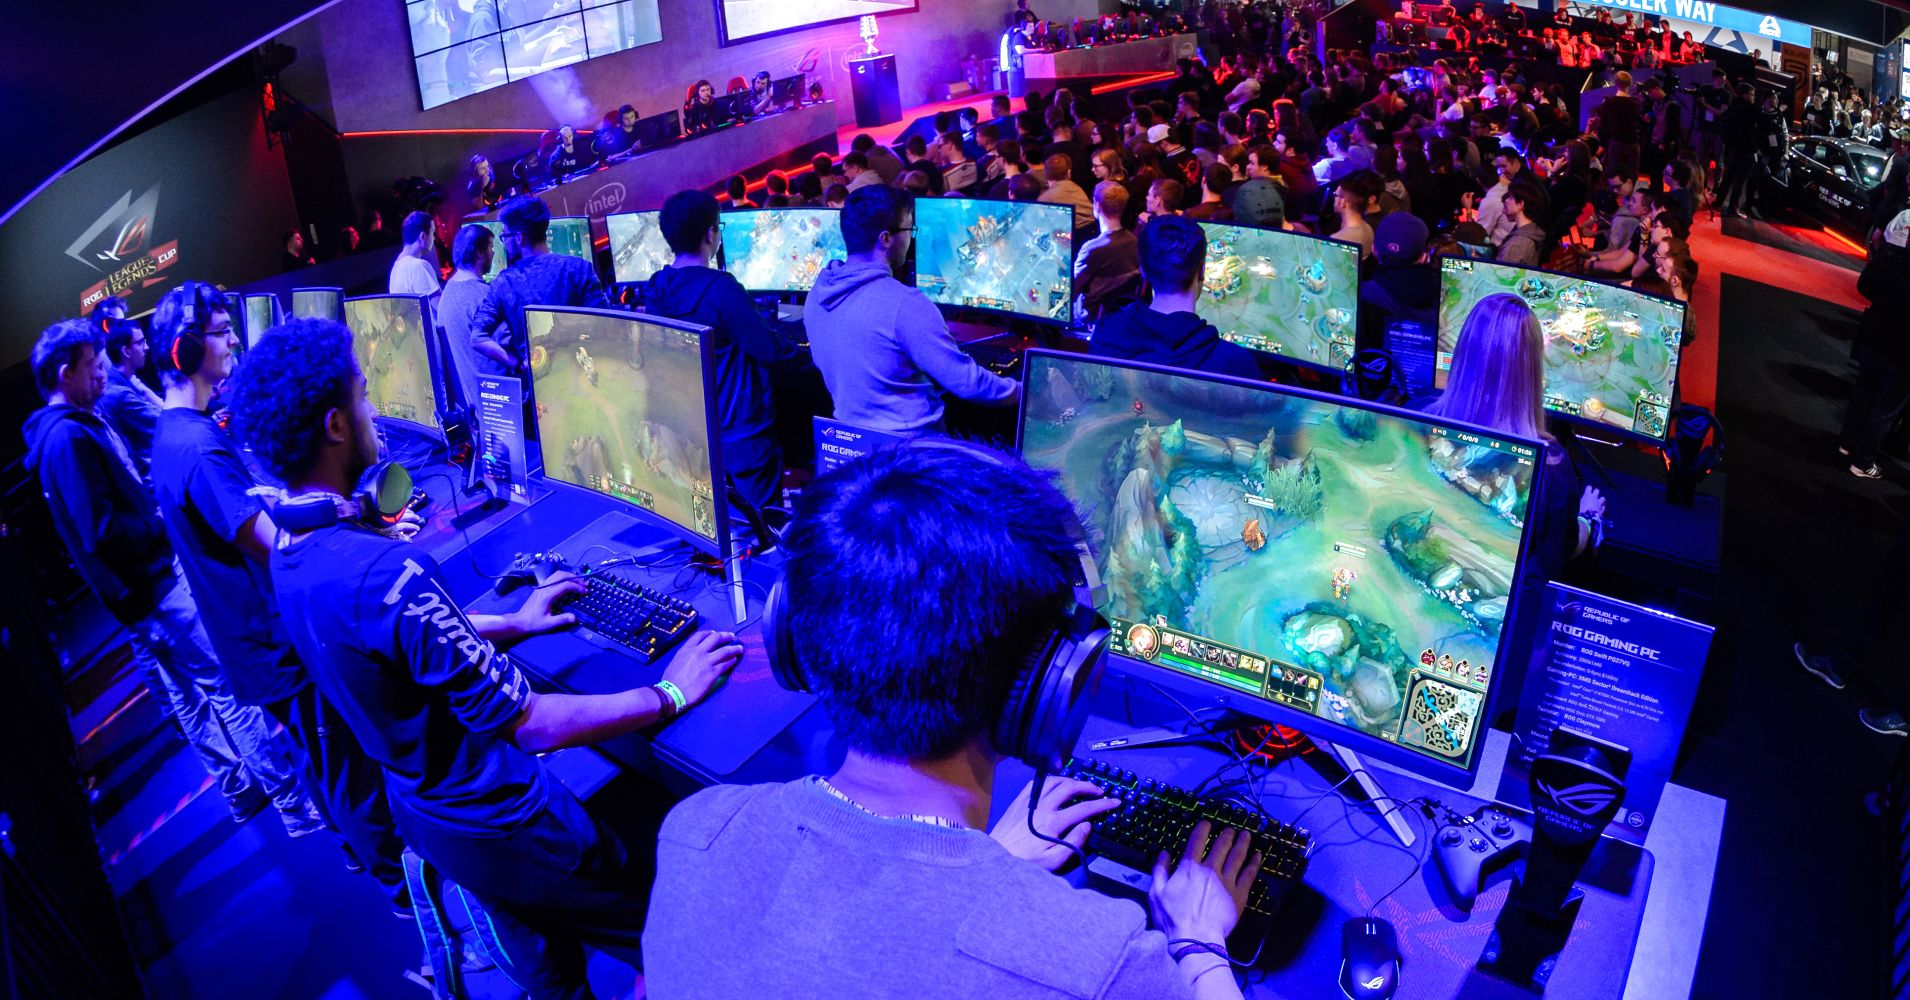 How 'Clash Royale' could play a big role in boosting mobile esports' already explosive growth